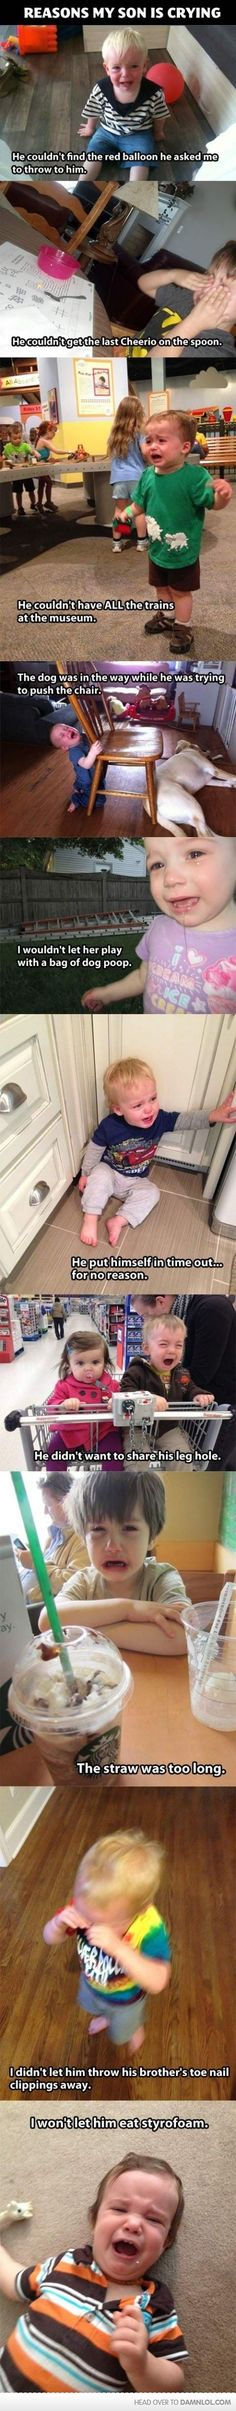 Laughed so hard bahahahaa check out her blog - reasons my son is crying...freaking hilarious!